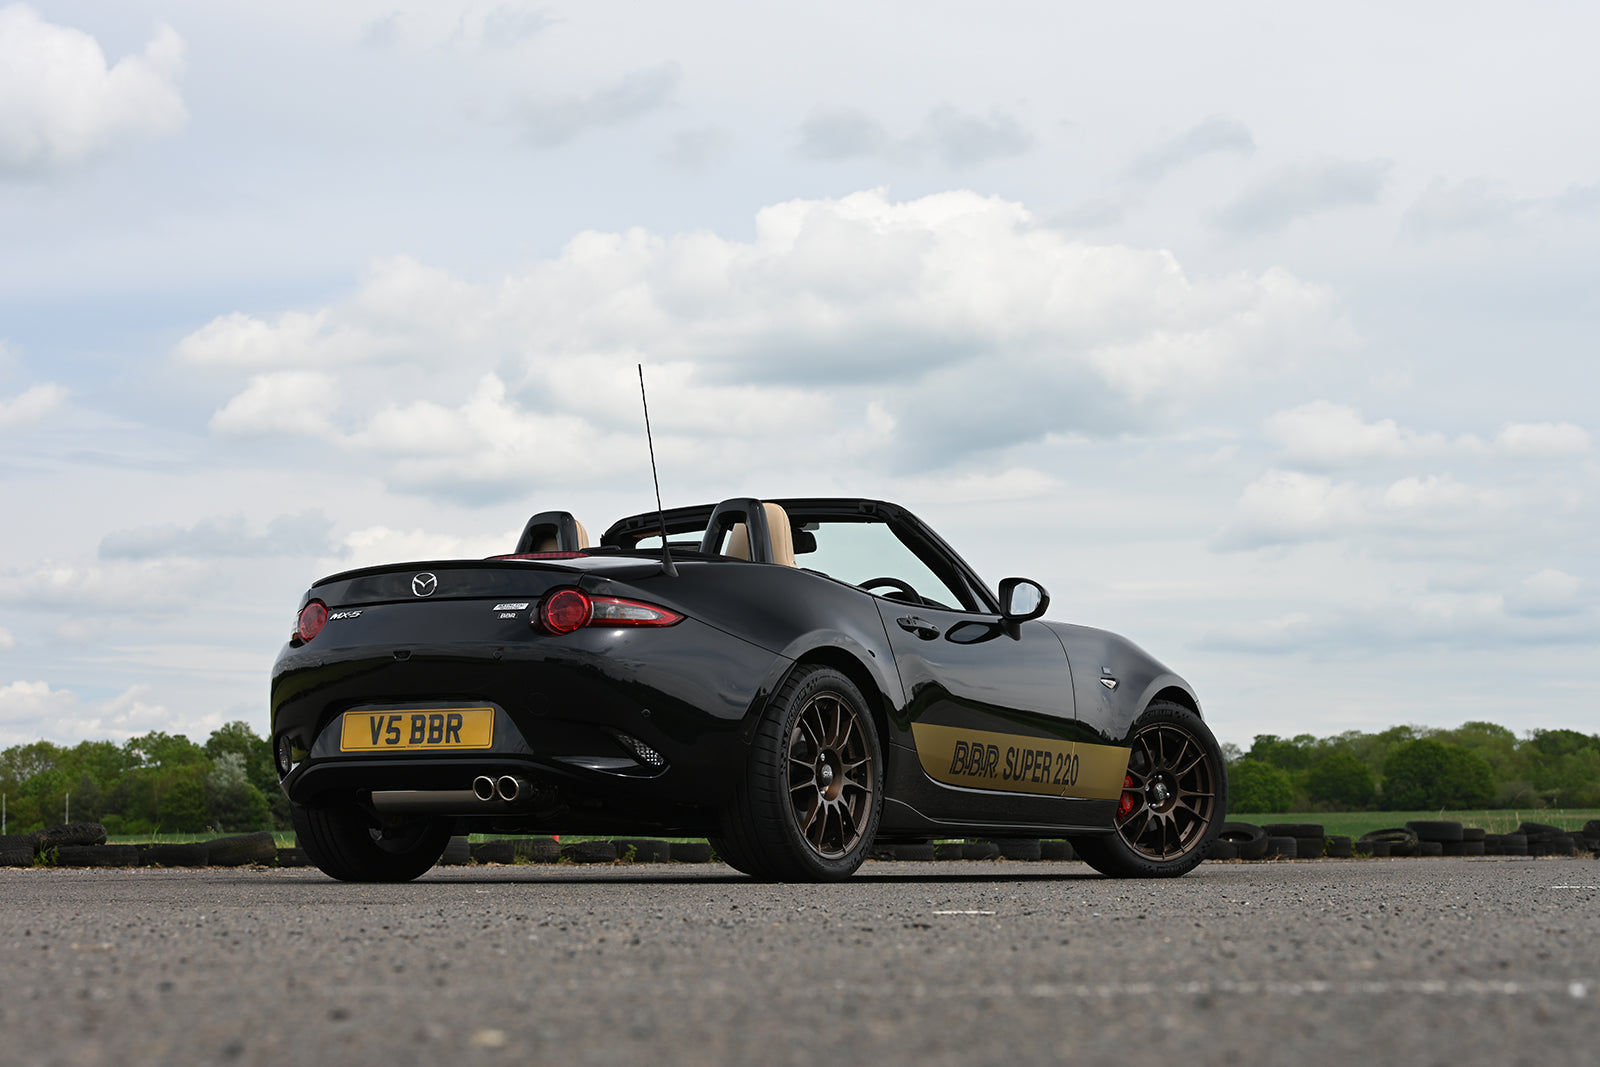 BBR launches Super 200 / Super 220 packages for 2019 184 PS Mazda MX-5 / Miata, with over 220 bhp now available